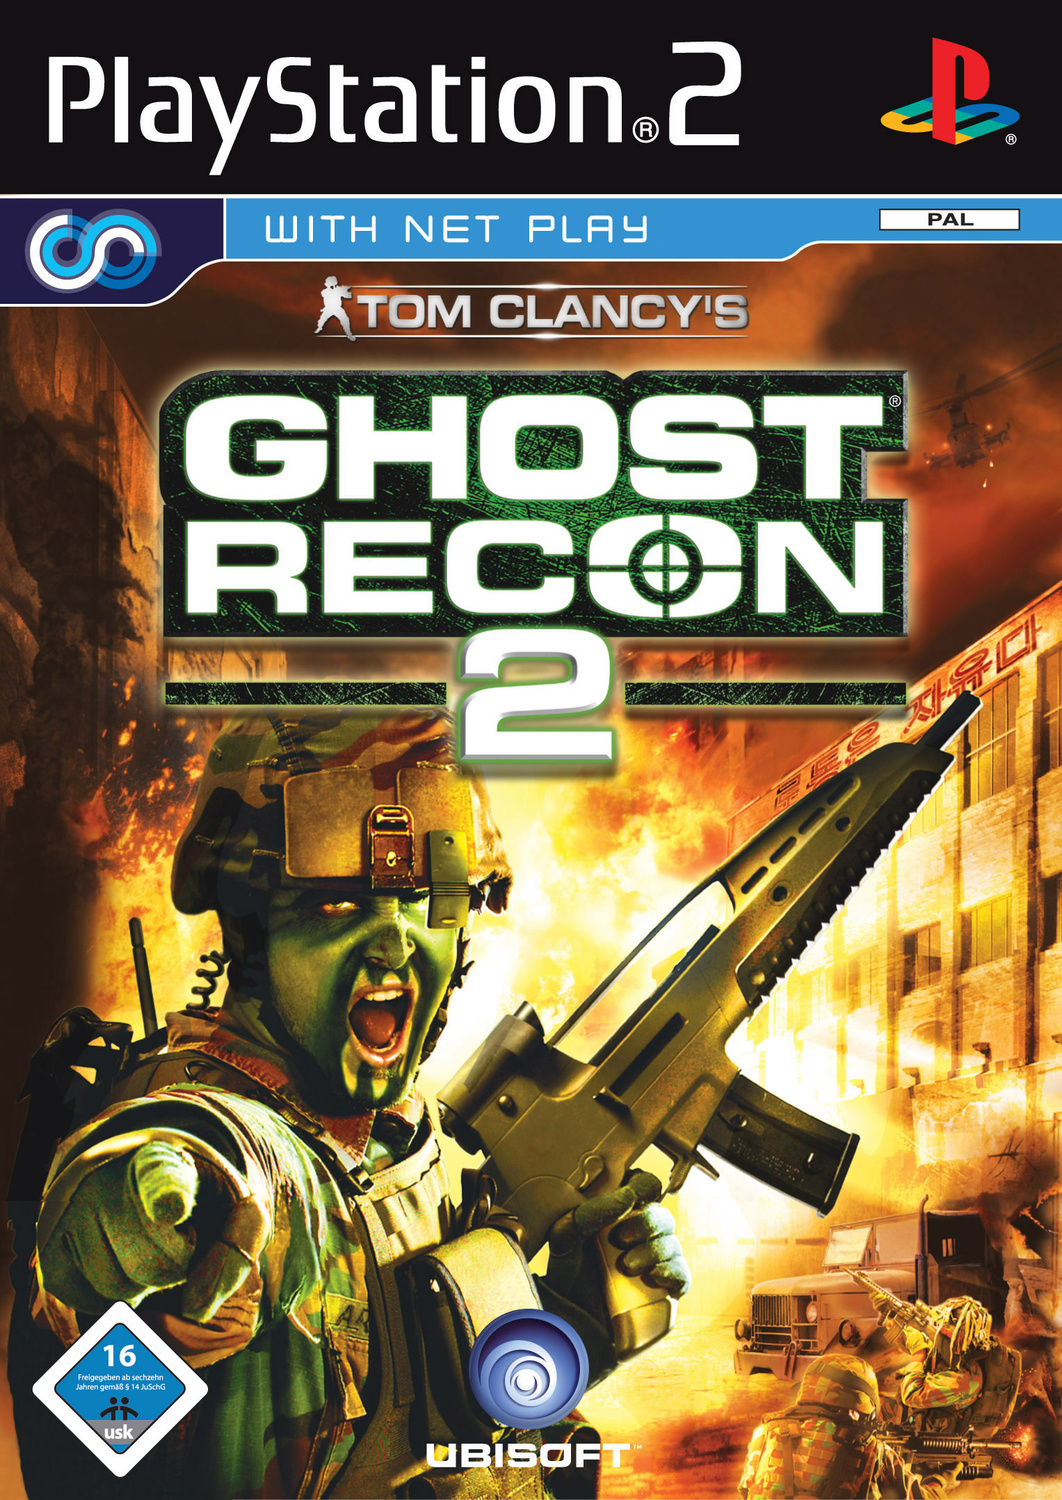 Tom Clancy´s Ghost Recon 2